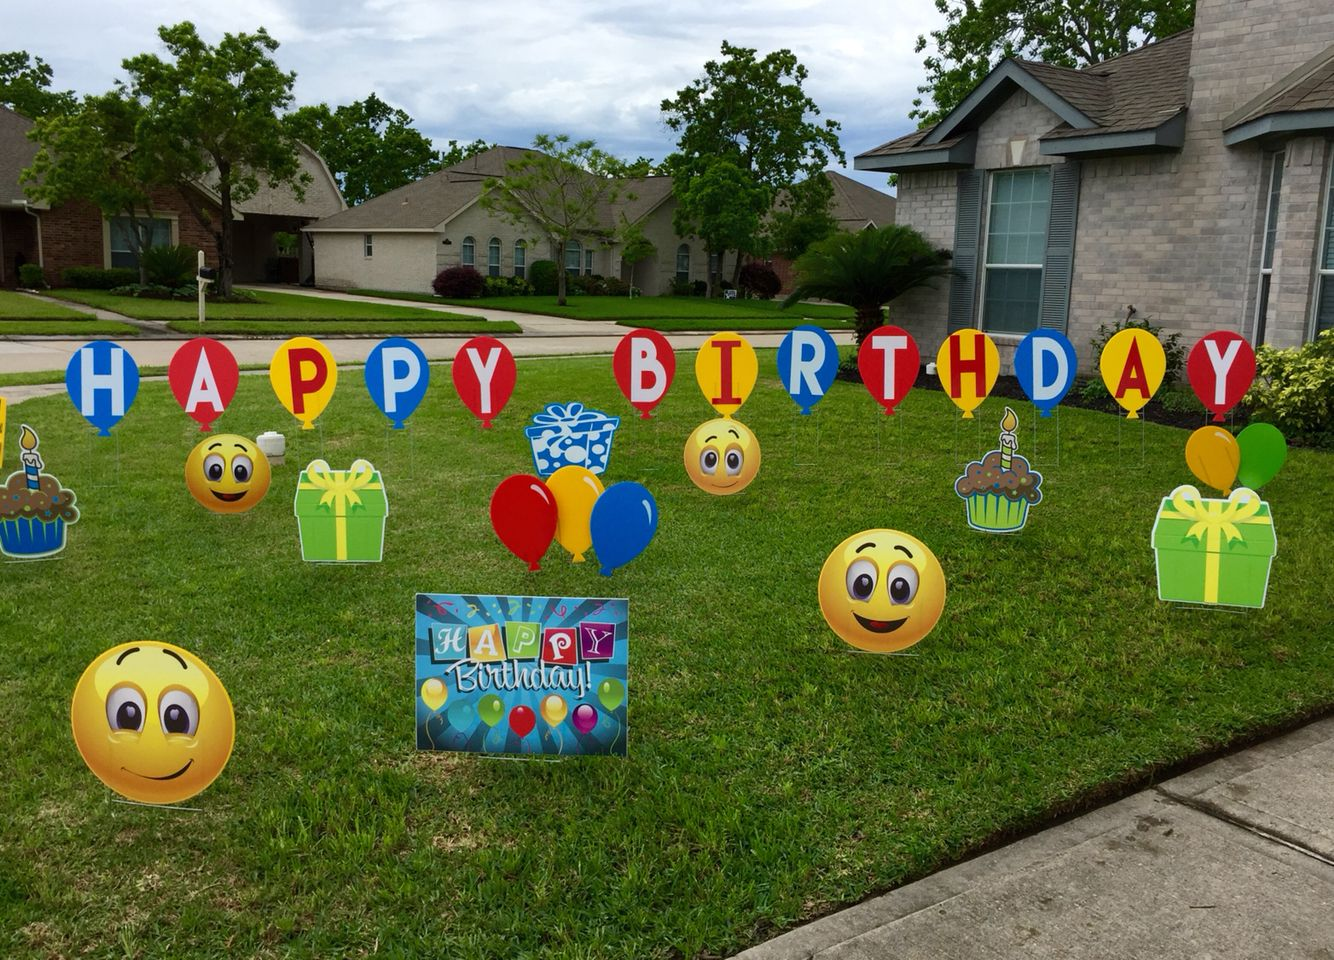 happy birthday balloon lawn letters with bright cheery emojis other yard decor